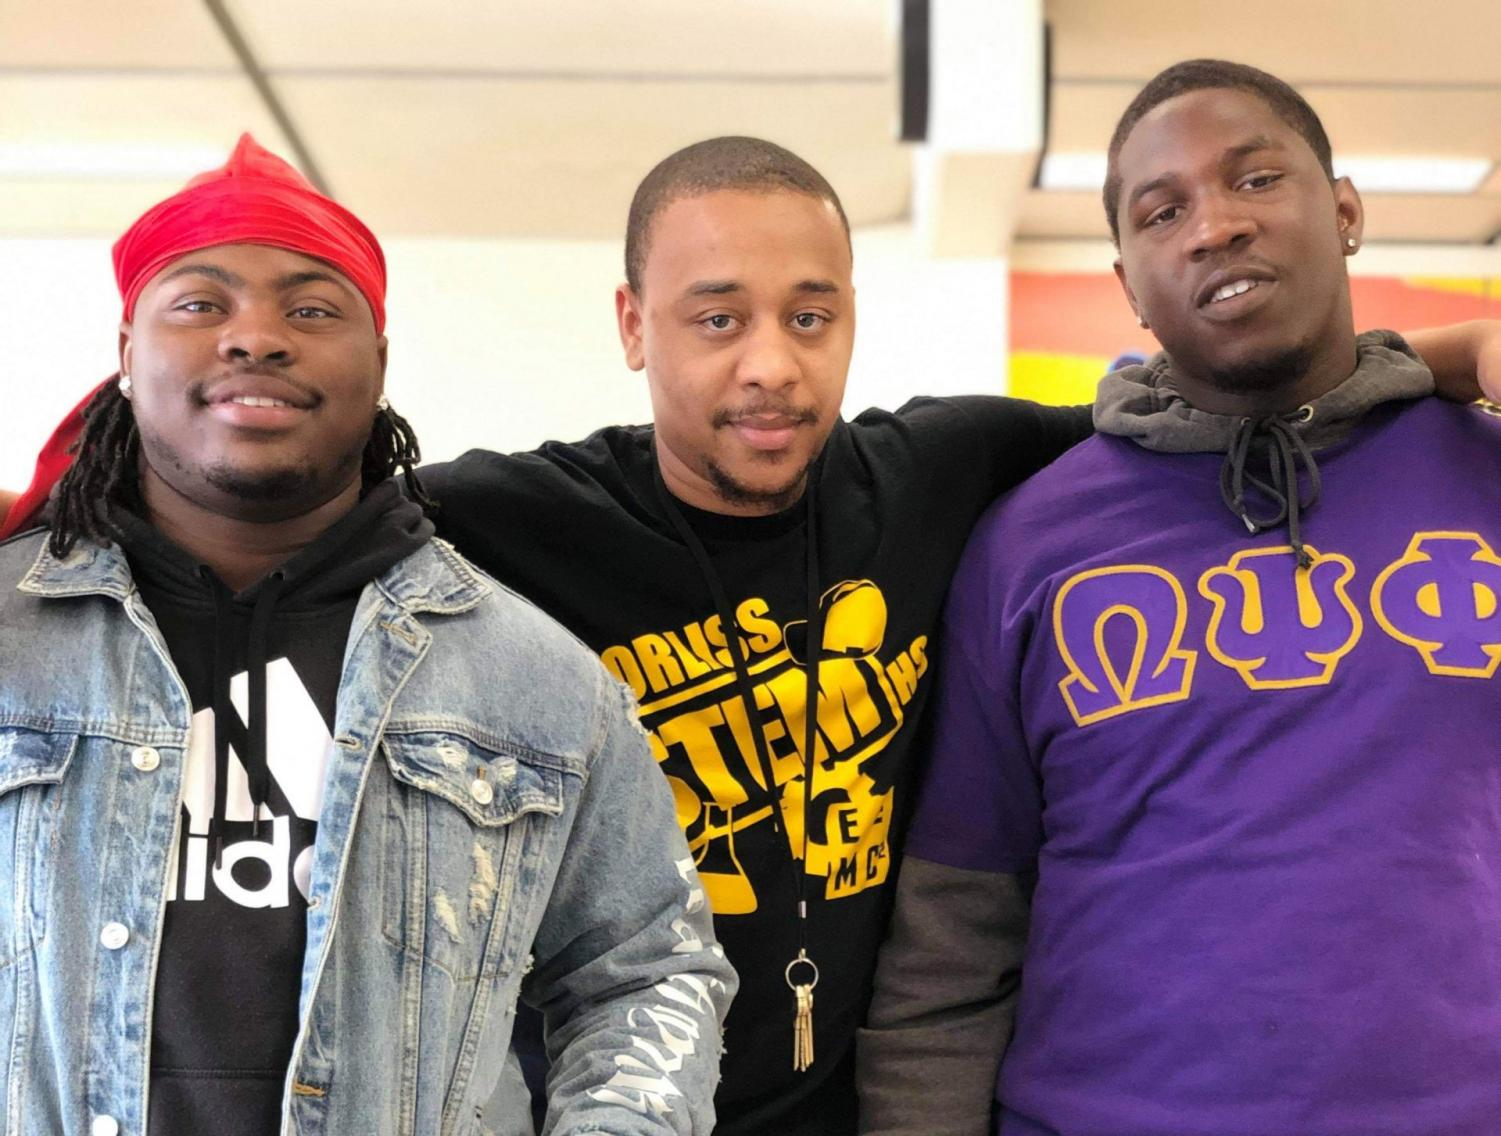 Trenton Sapp (middle) poses with two of his students, (left) Jivontae Price and (right) Courtney William. Sapp teaches that success can come from any part of the city.